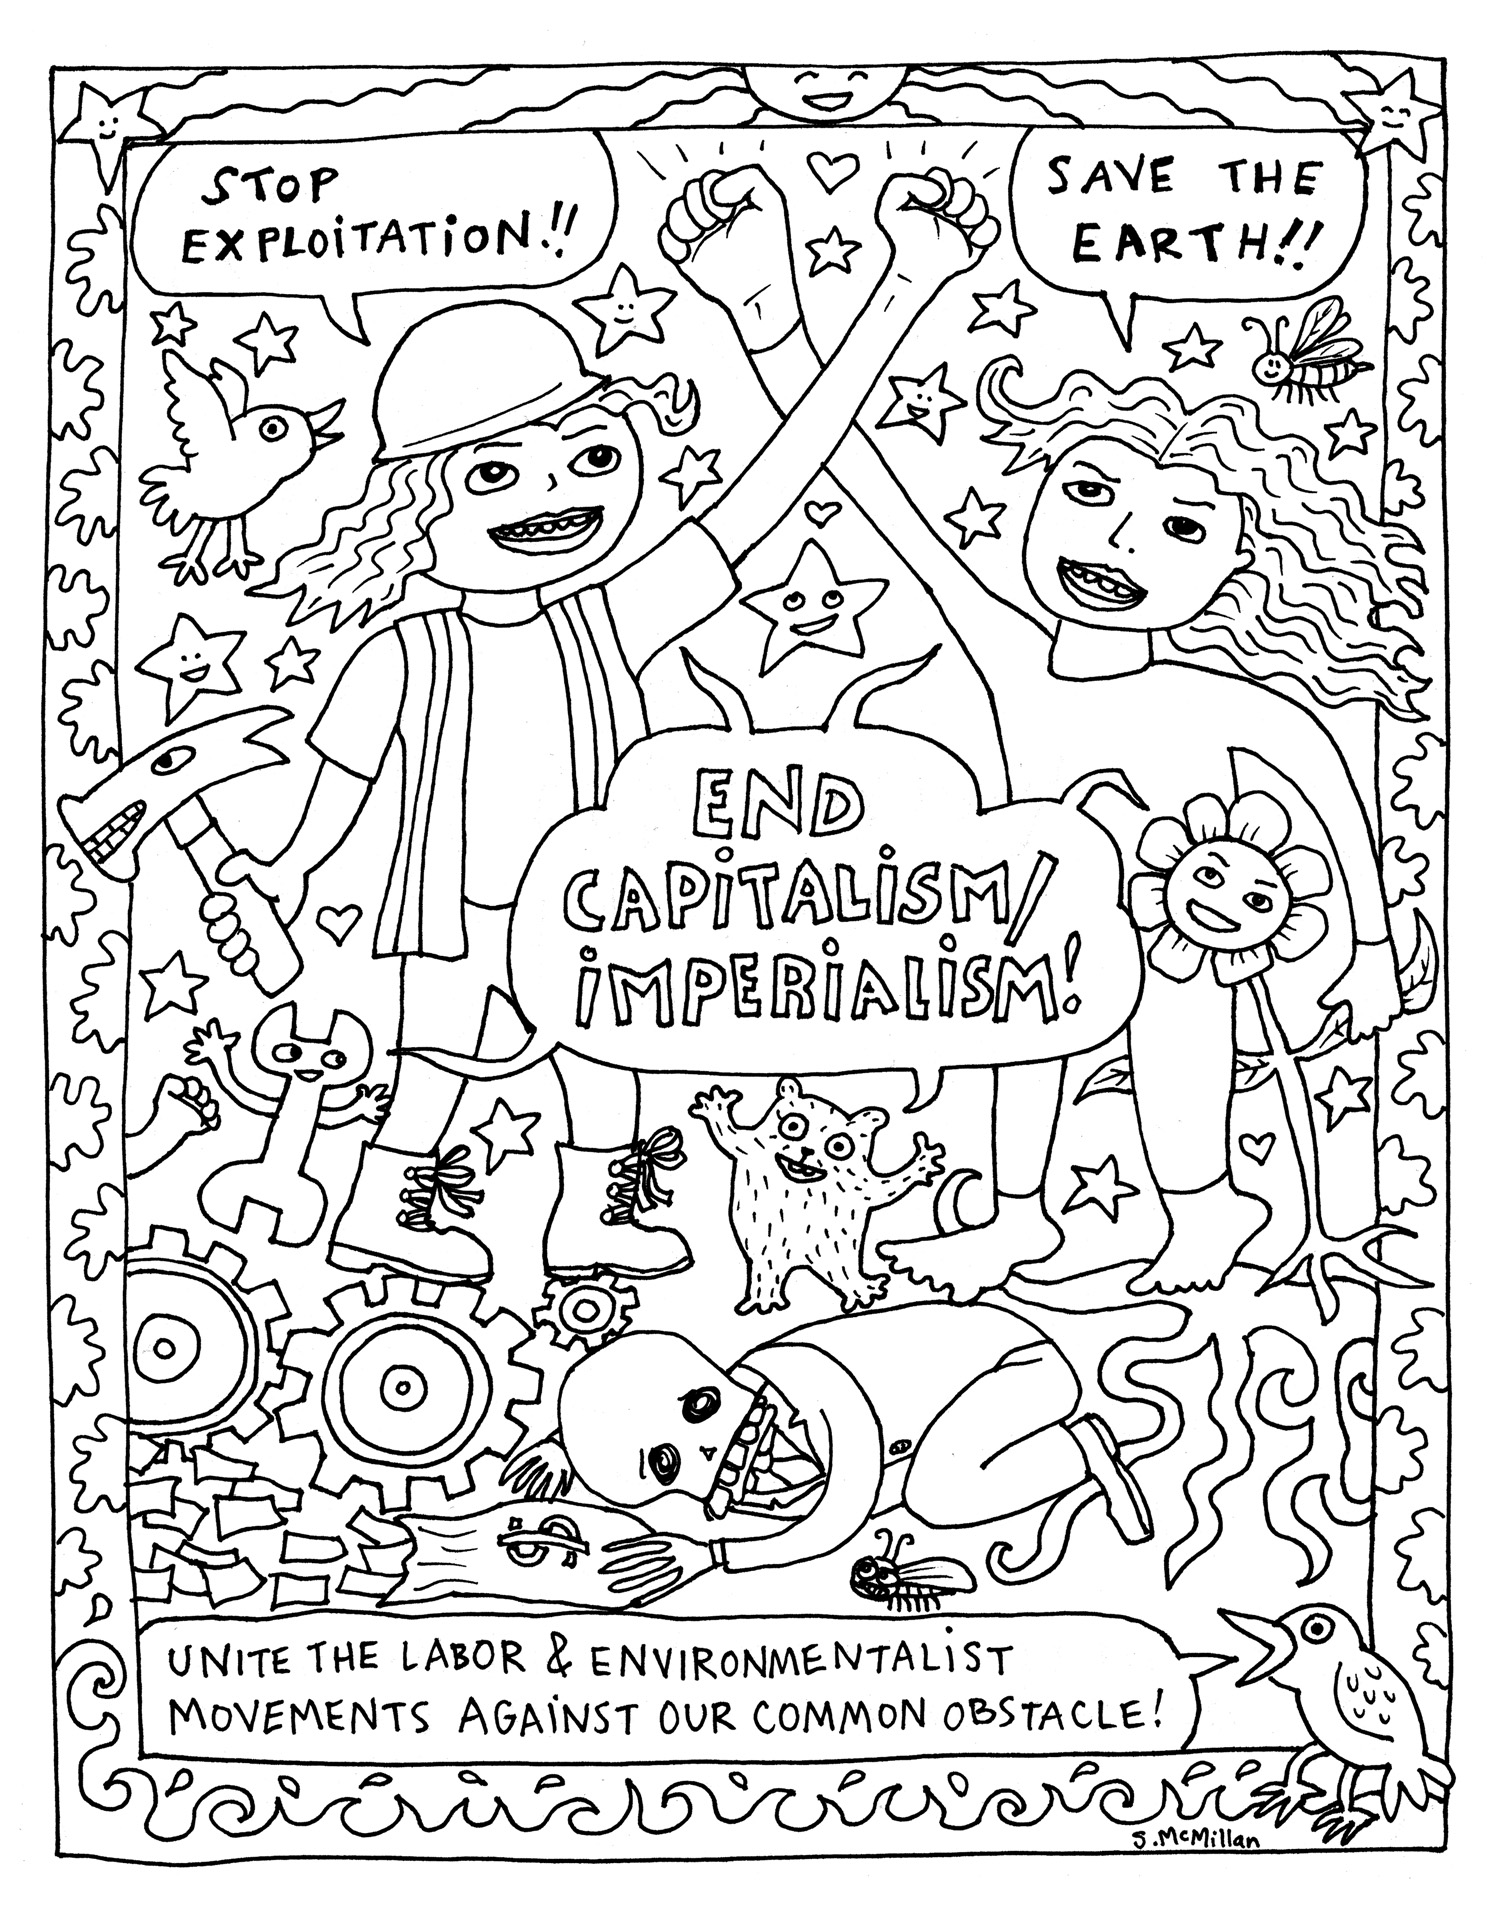 Bakery Coloring Page | Coloring pages, House colouring pages, Free ... | 1909x1500